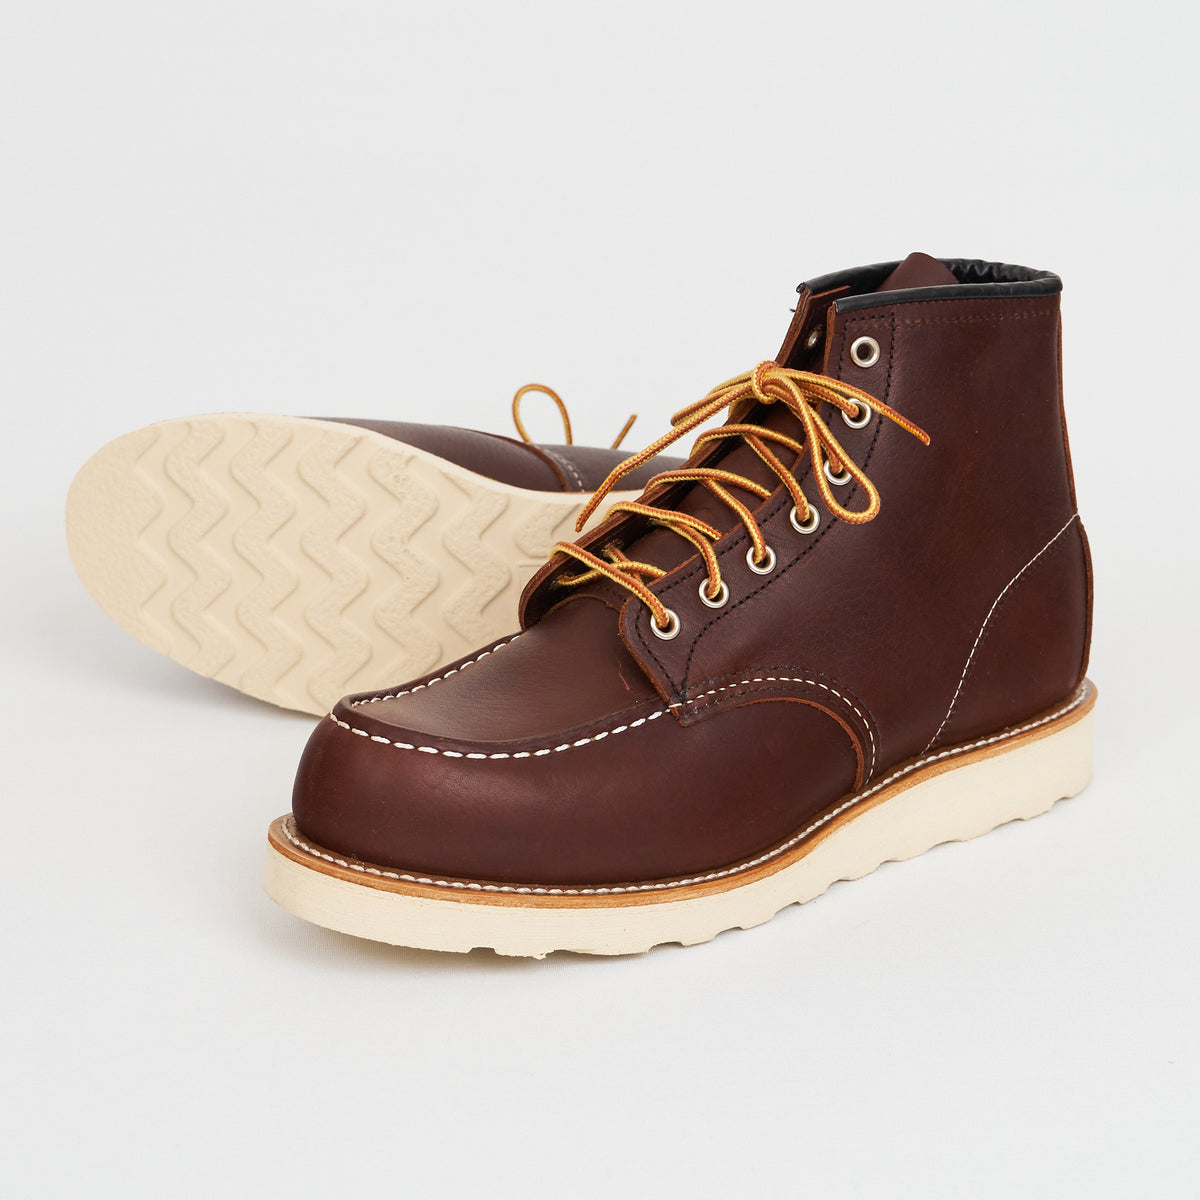 Red Wing Heritage Shoes Classic Moc-Toe 8890, 875, 8131, 8138